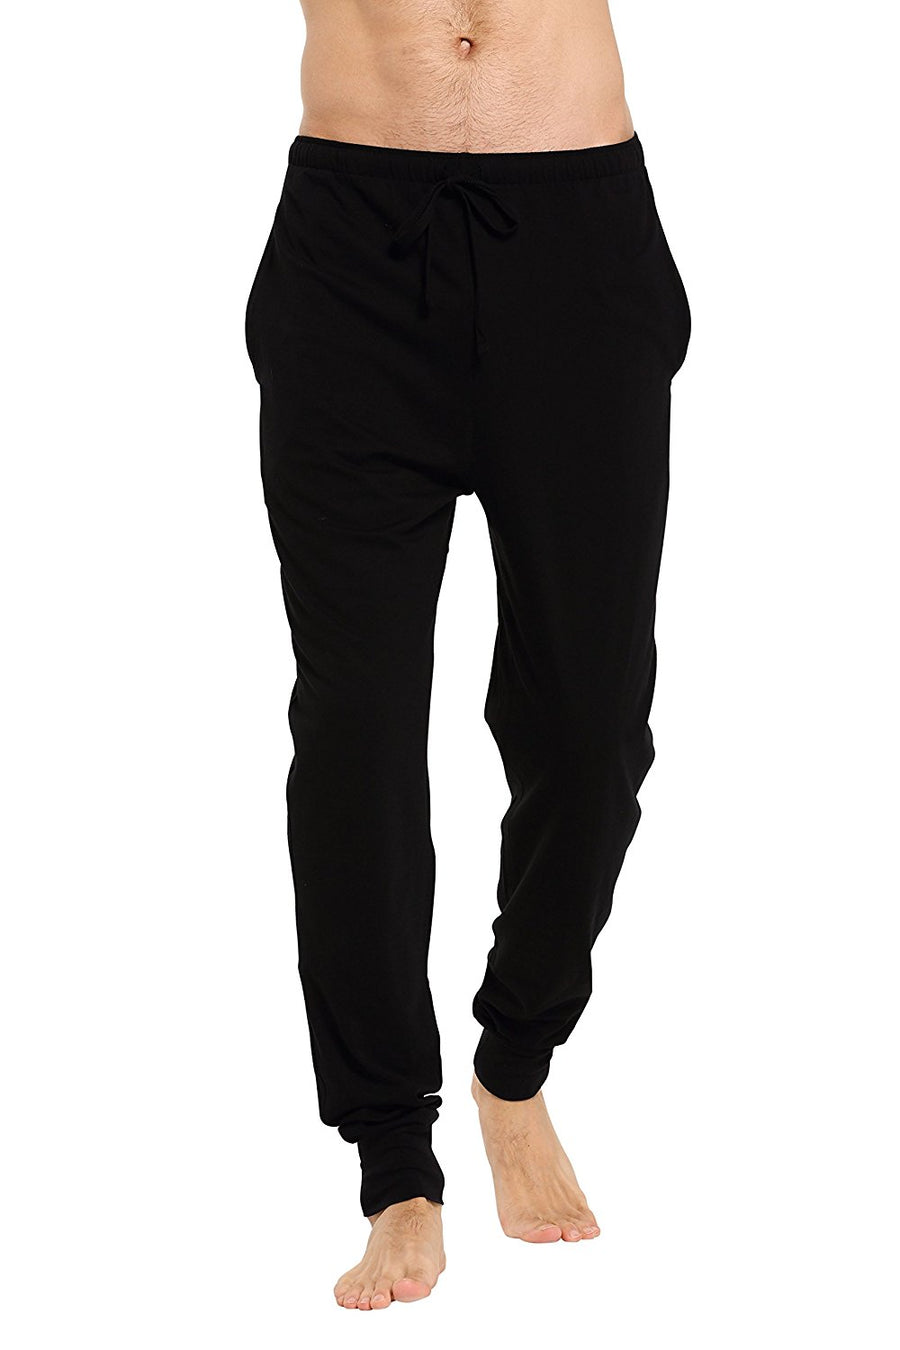 CYZ Men's Cotton Knit Jogger Lounge Pants with Drawstring